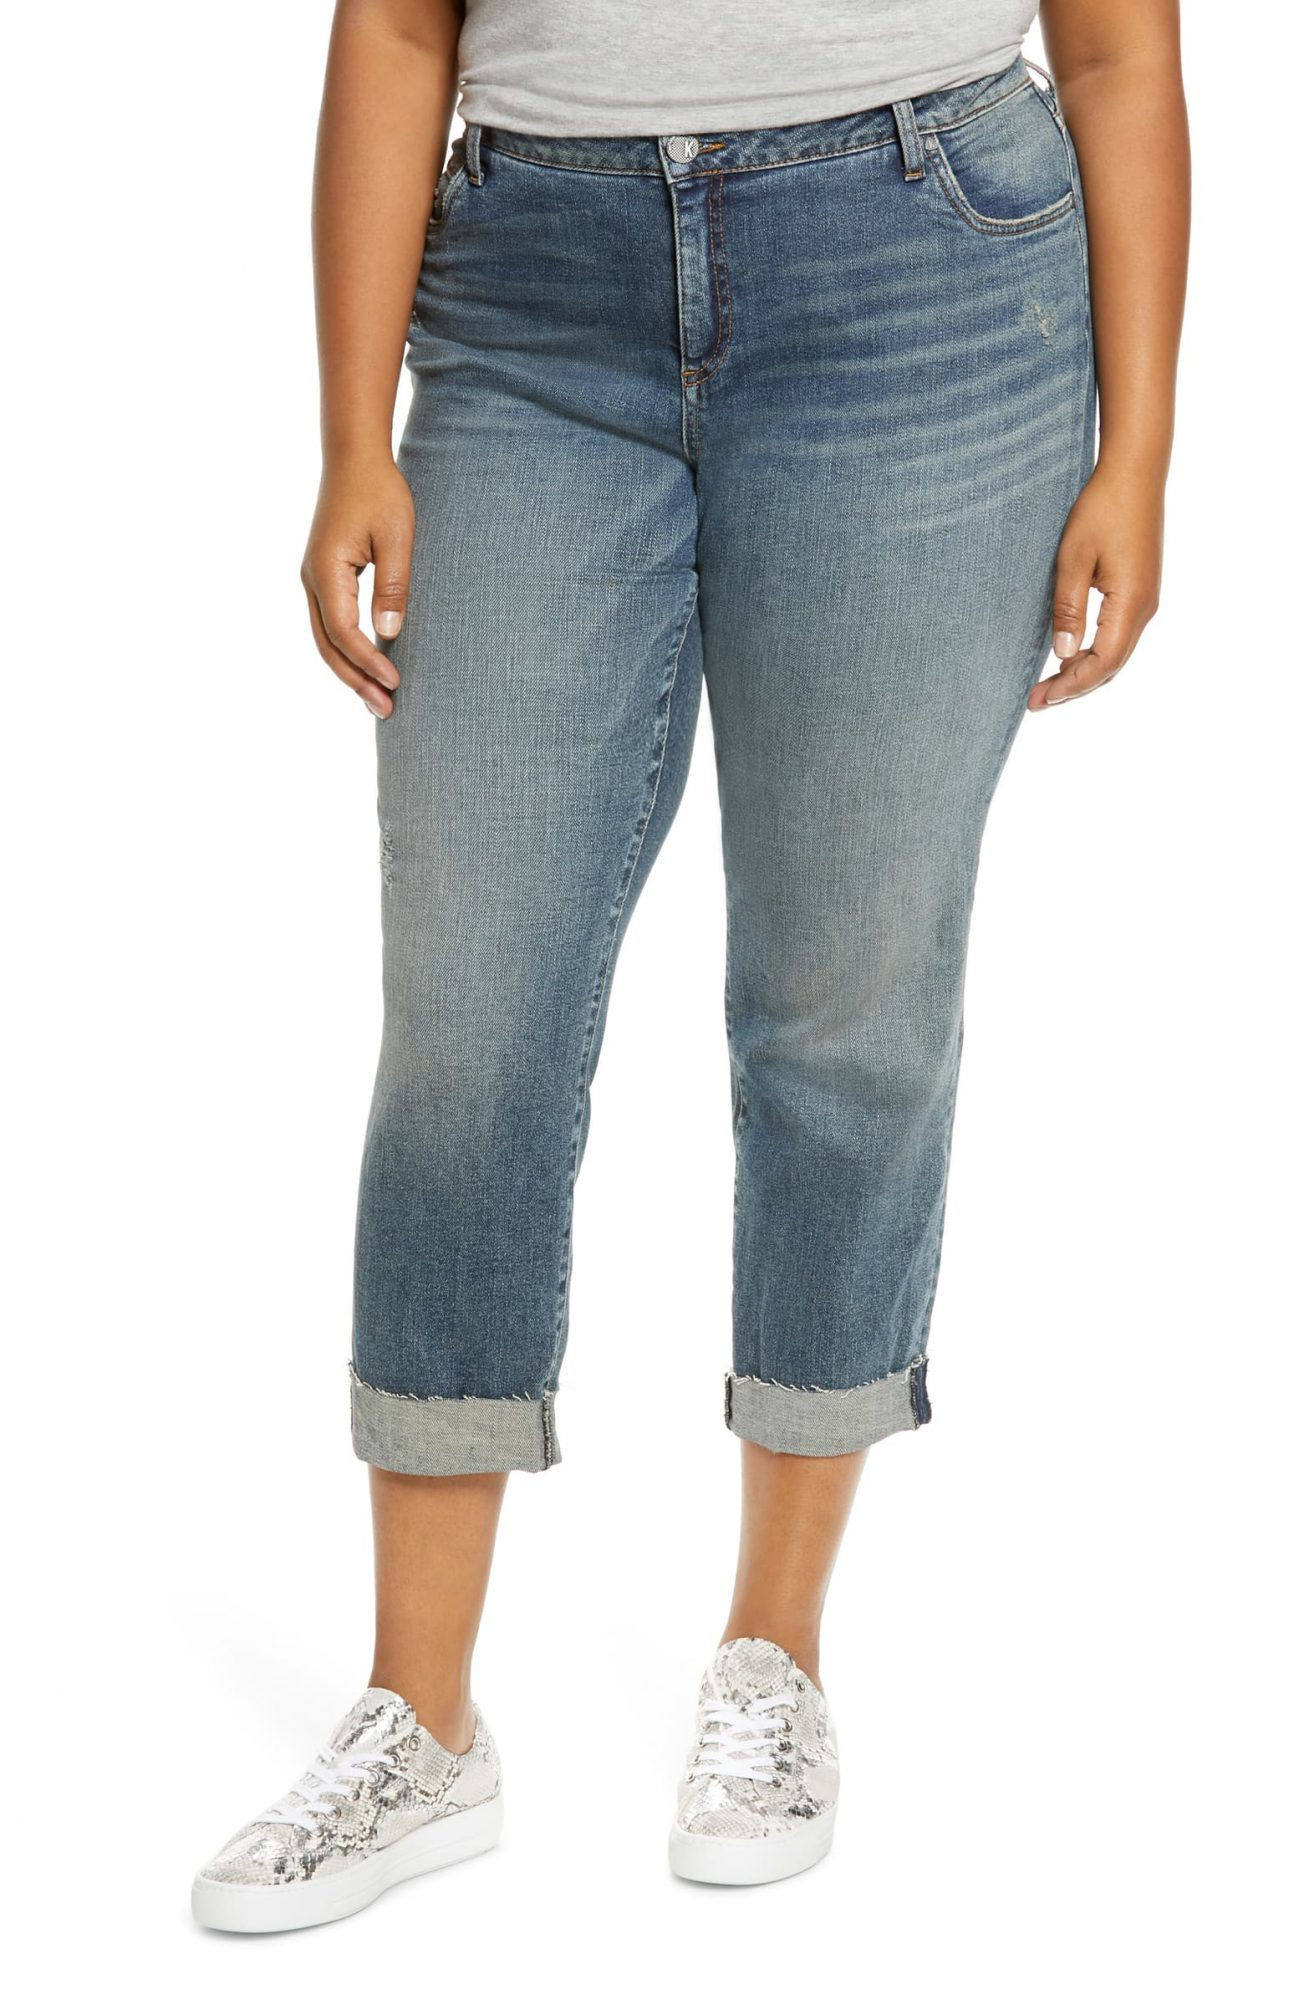 best plus size boyfriend jeans, nordstrom kut from the kloth jeans